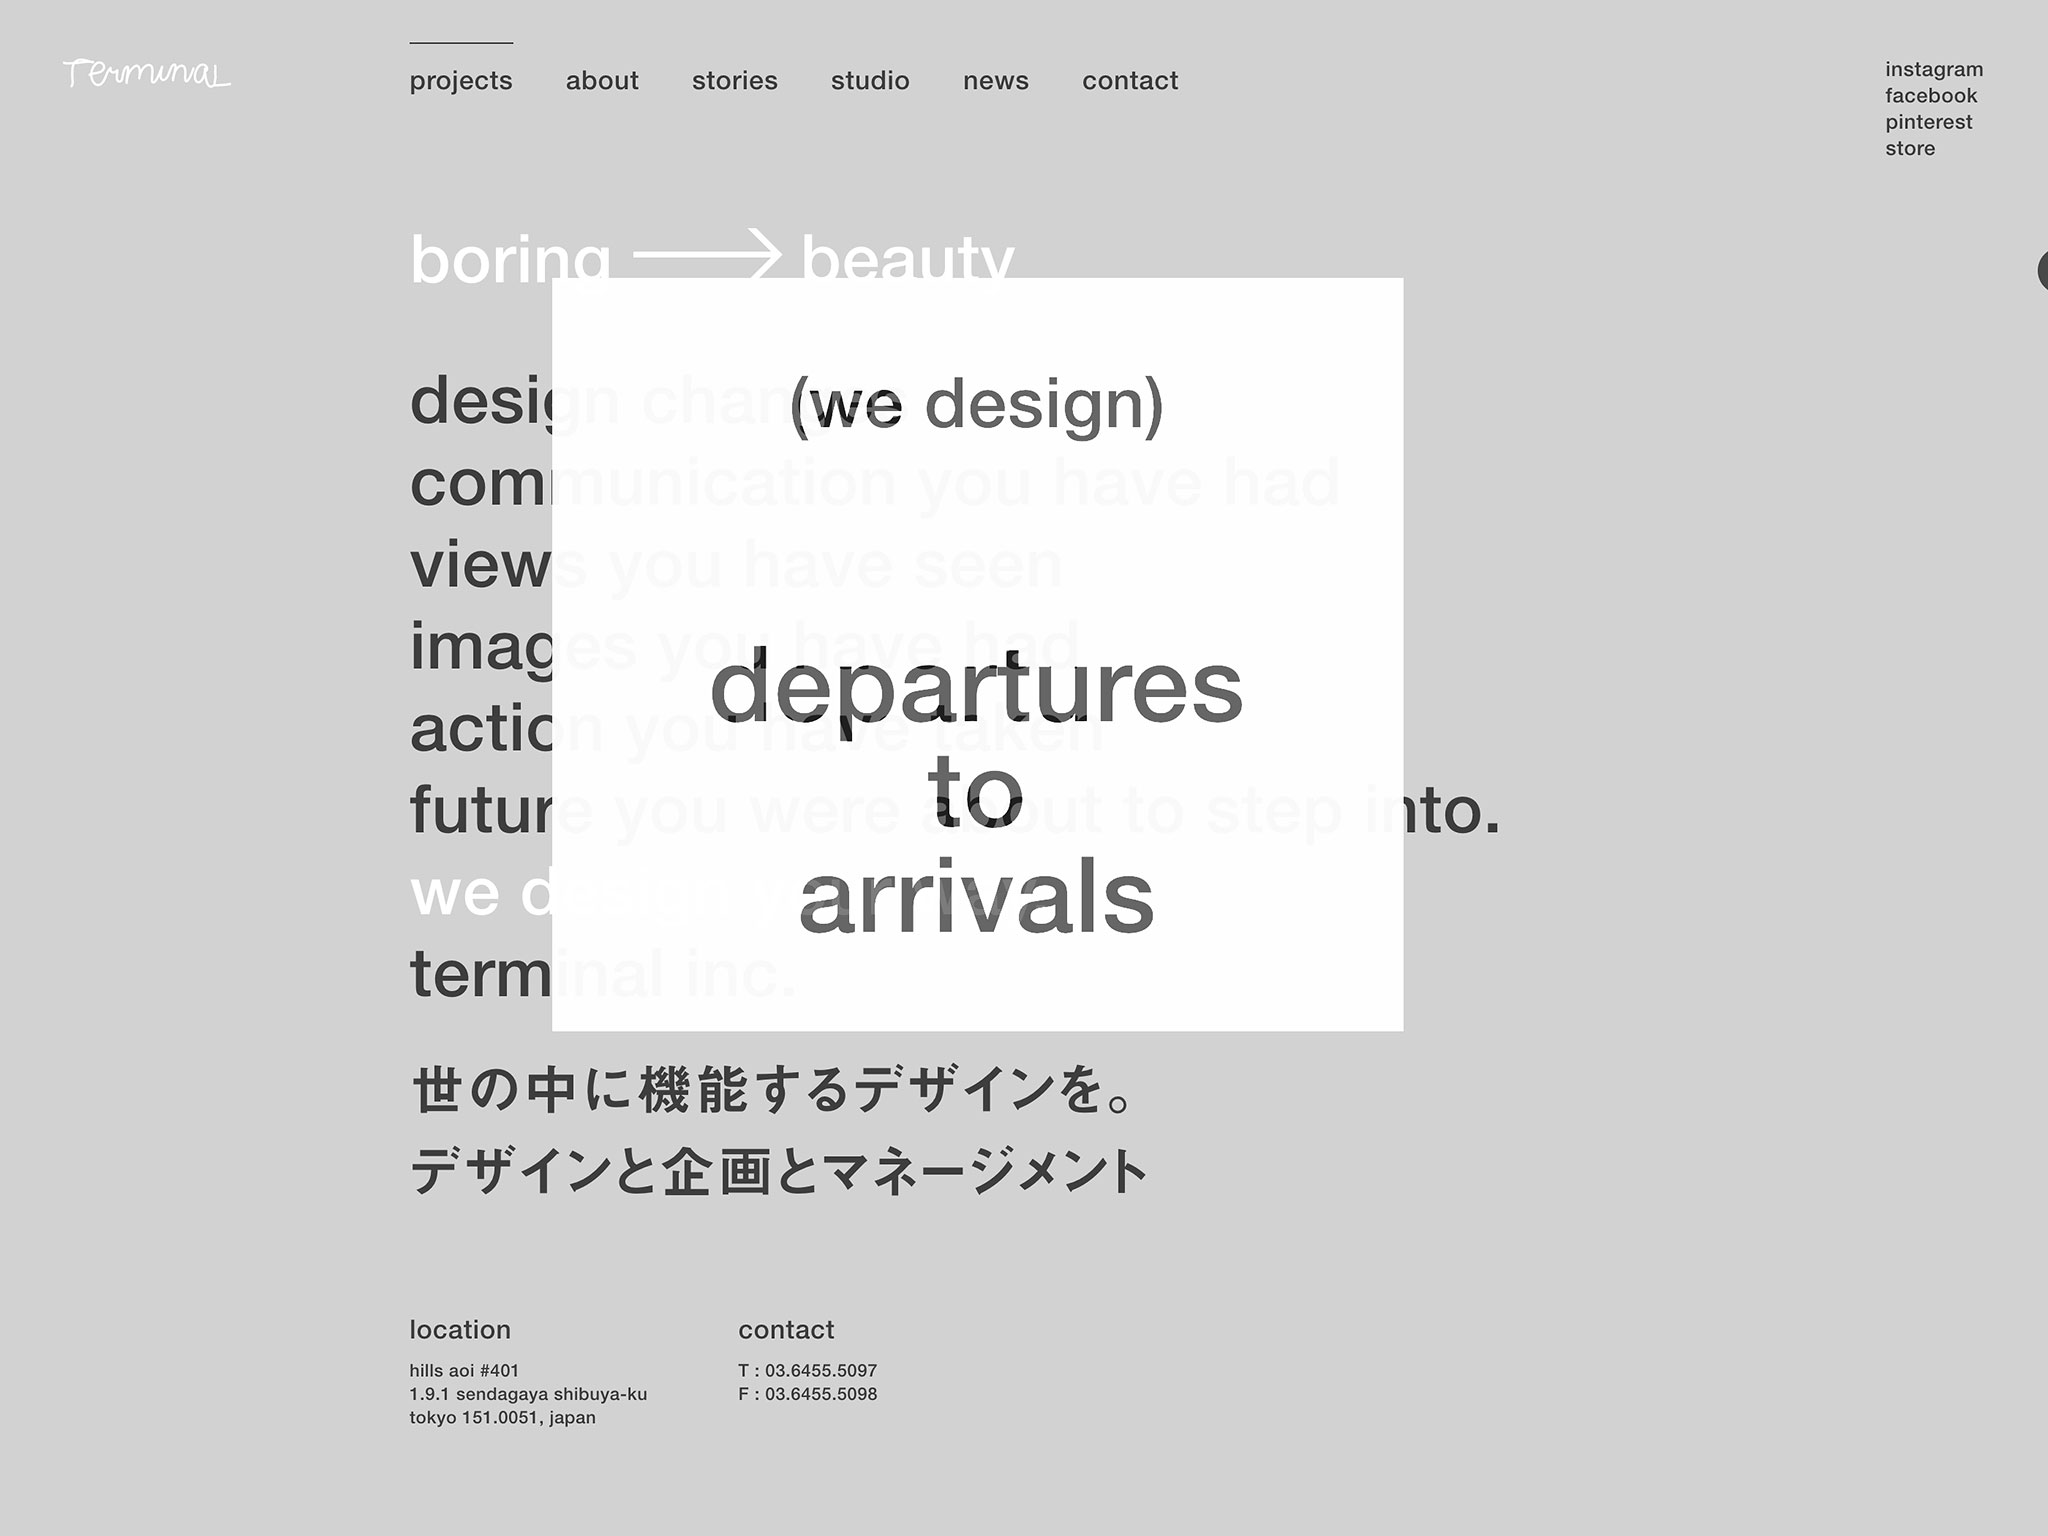 terminal Inc. | design, planning and management